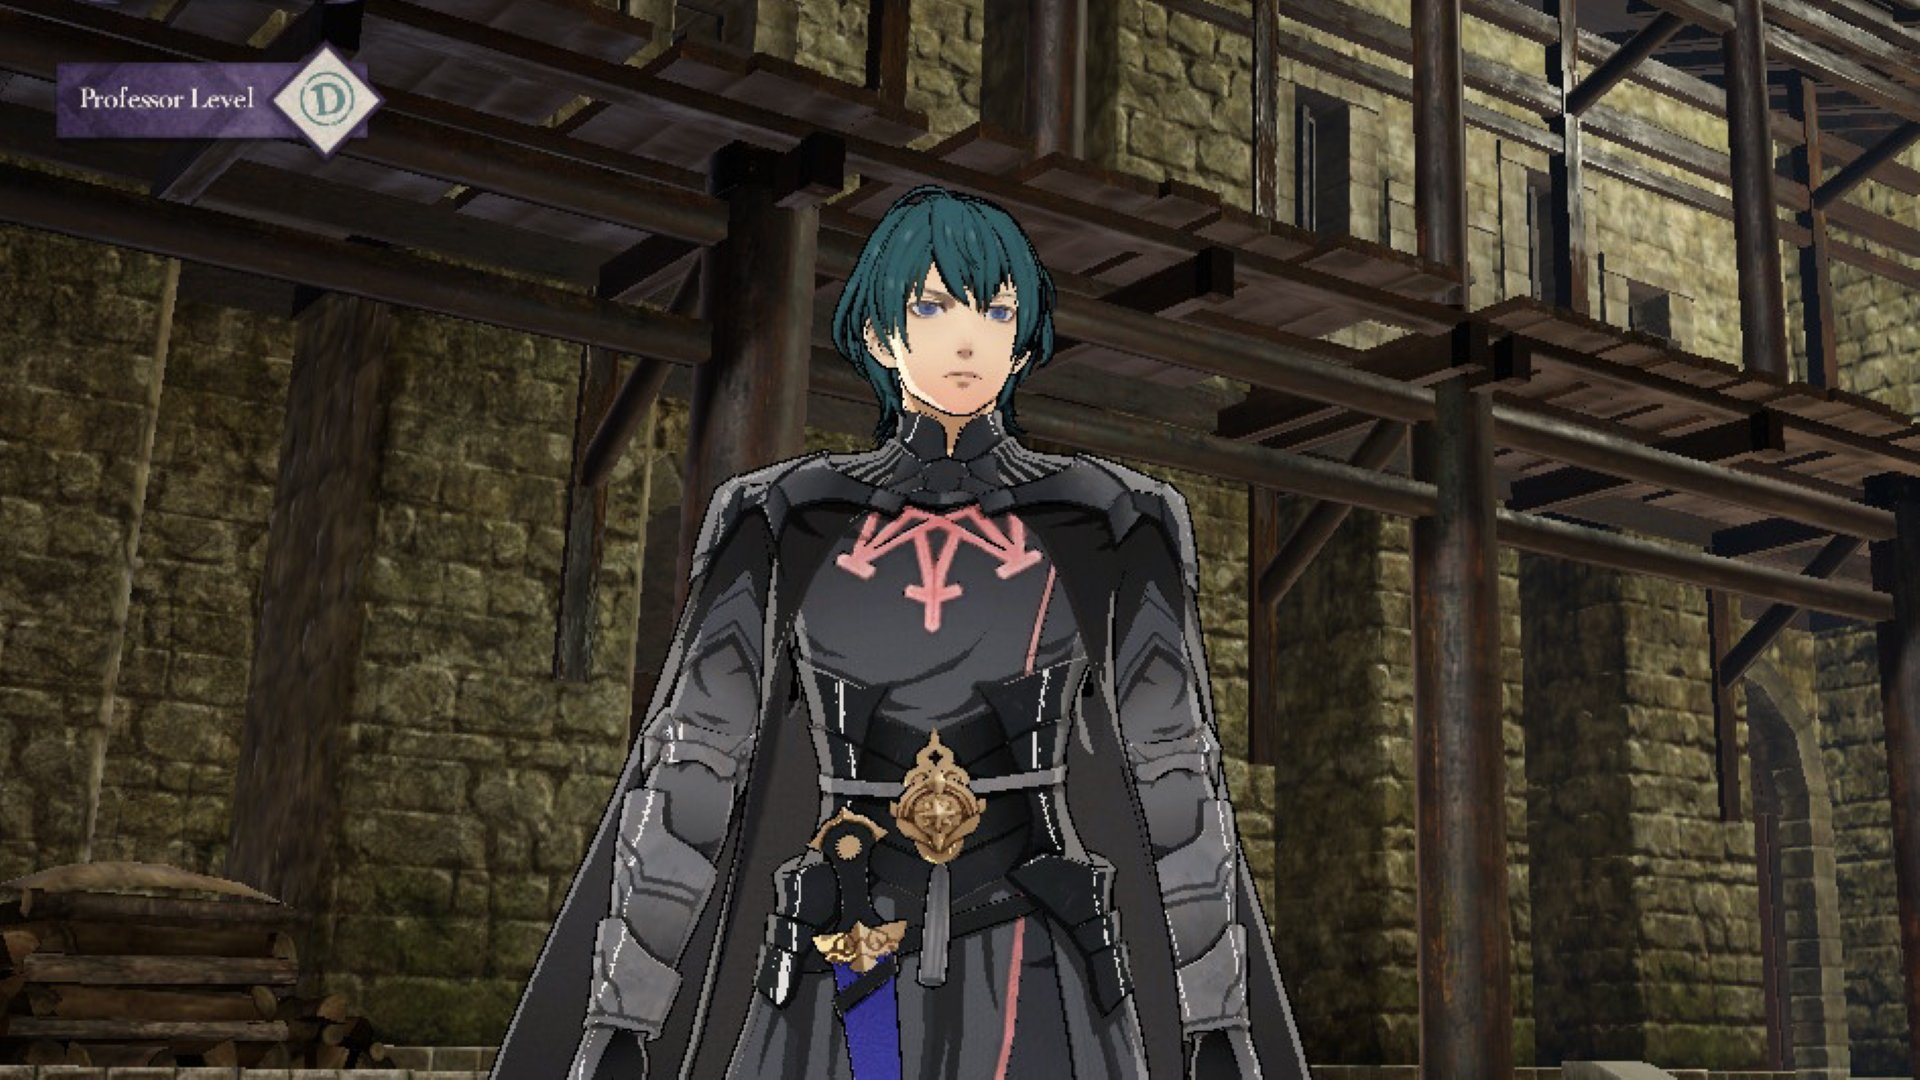 How to increase Professor Level in Fire Emblem: Three Houses